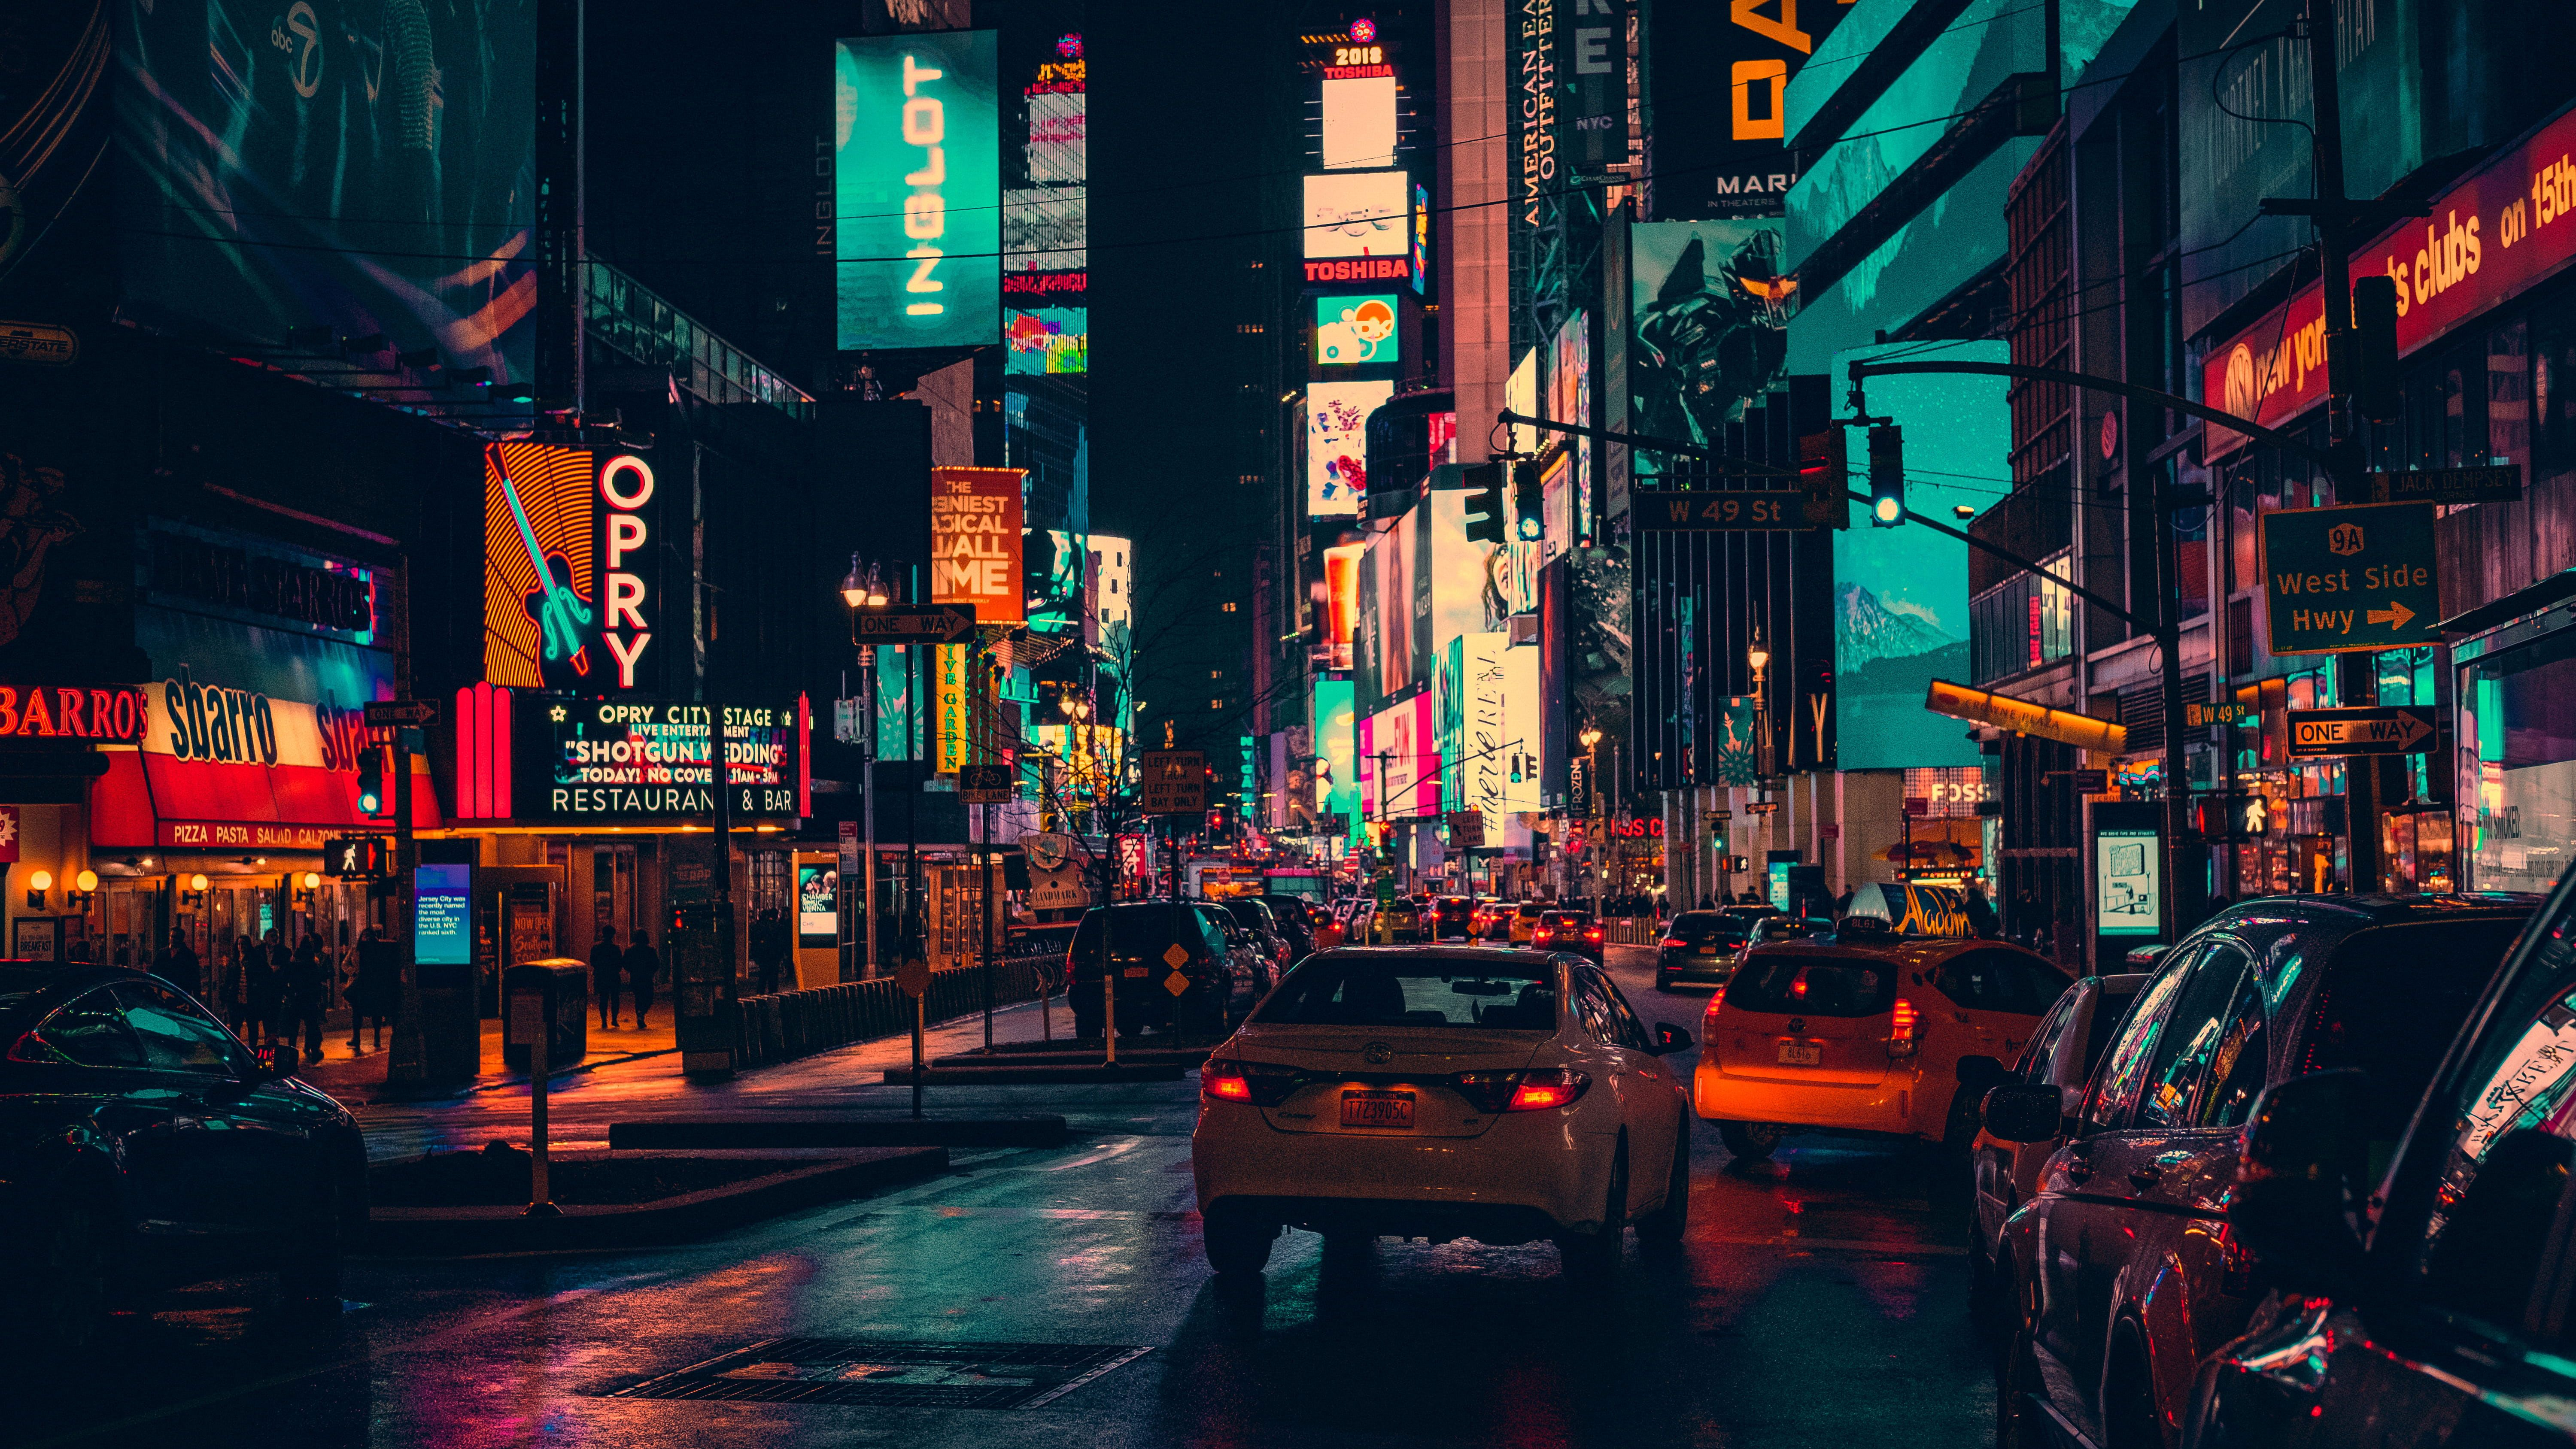 Cars On Road Surrounded By Building During Nighttime Town City Wallpaper In 2021 City Wallpaper Reflection Photos Neon Wallpaper